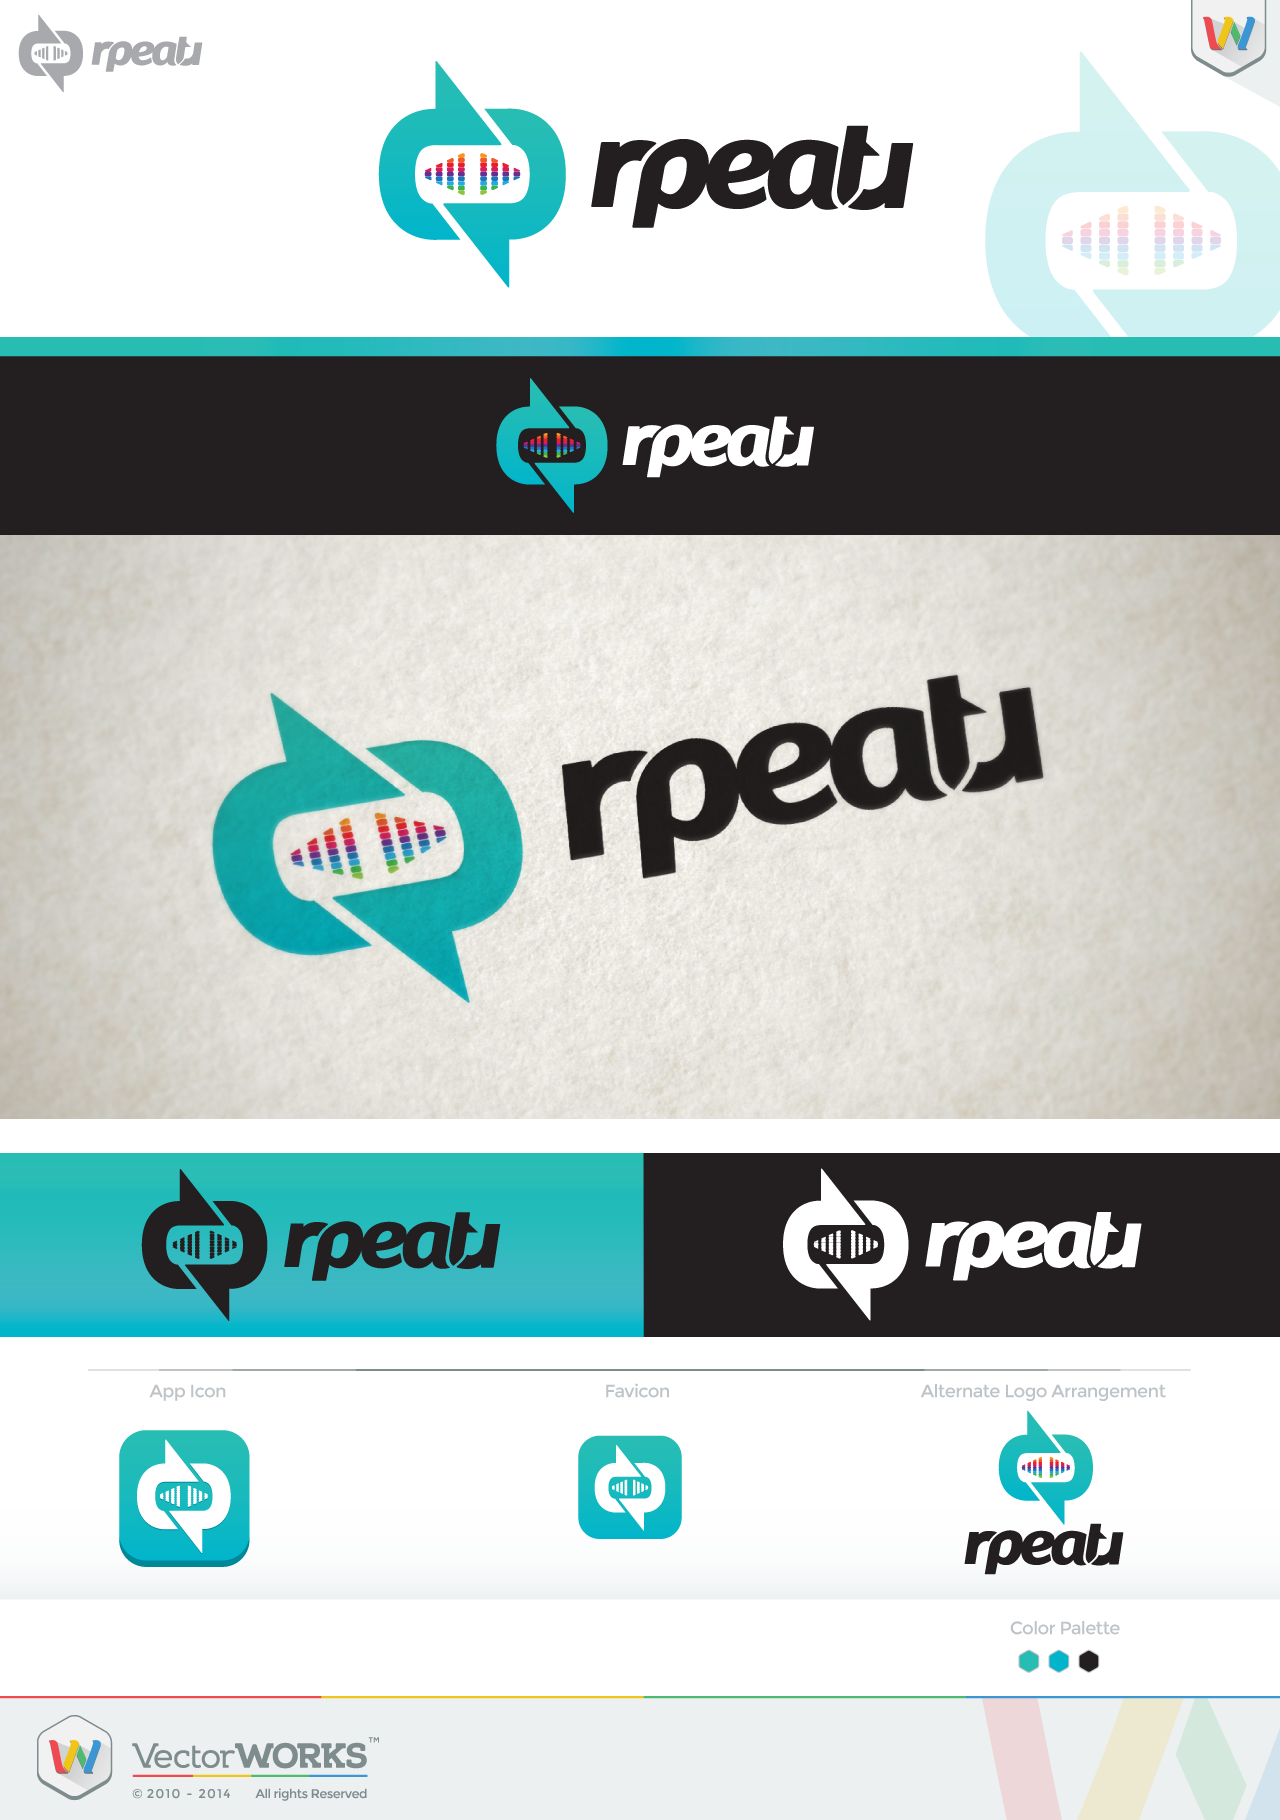 RpeatR - Create THE logo and THE icon for the next up-and-coming music social network!